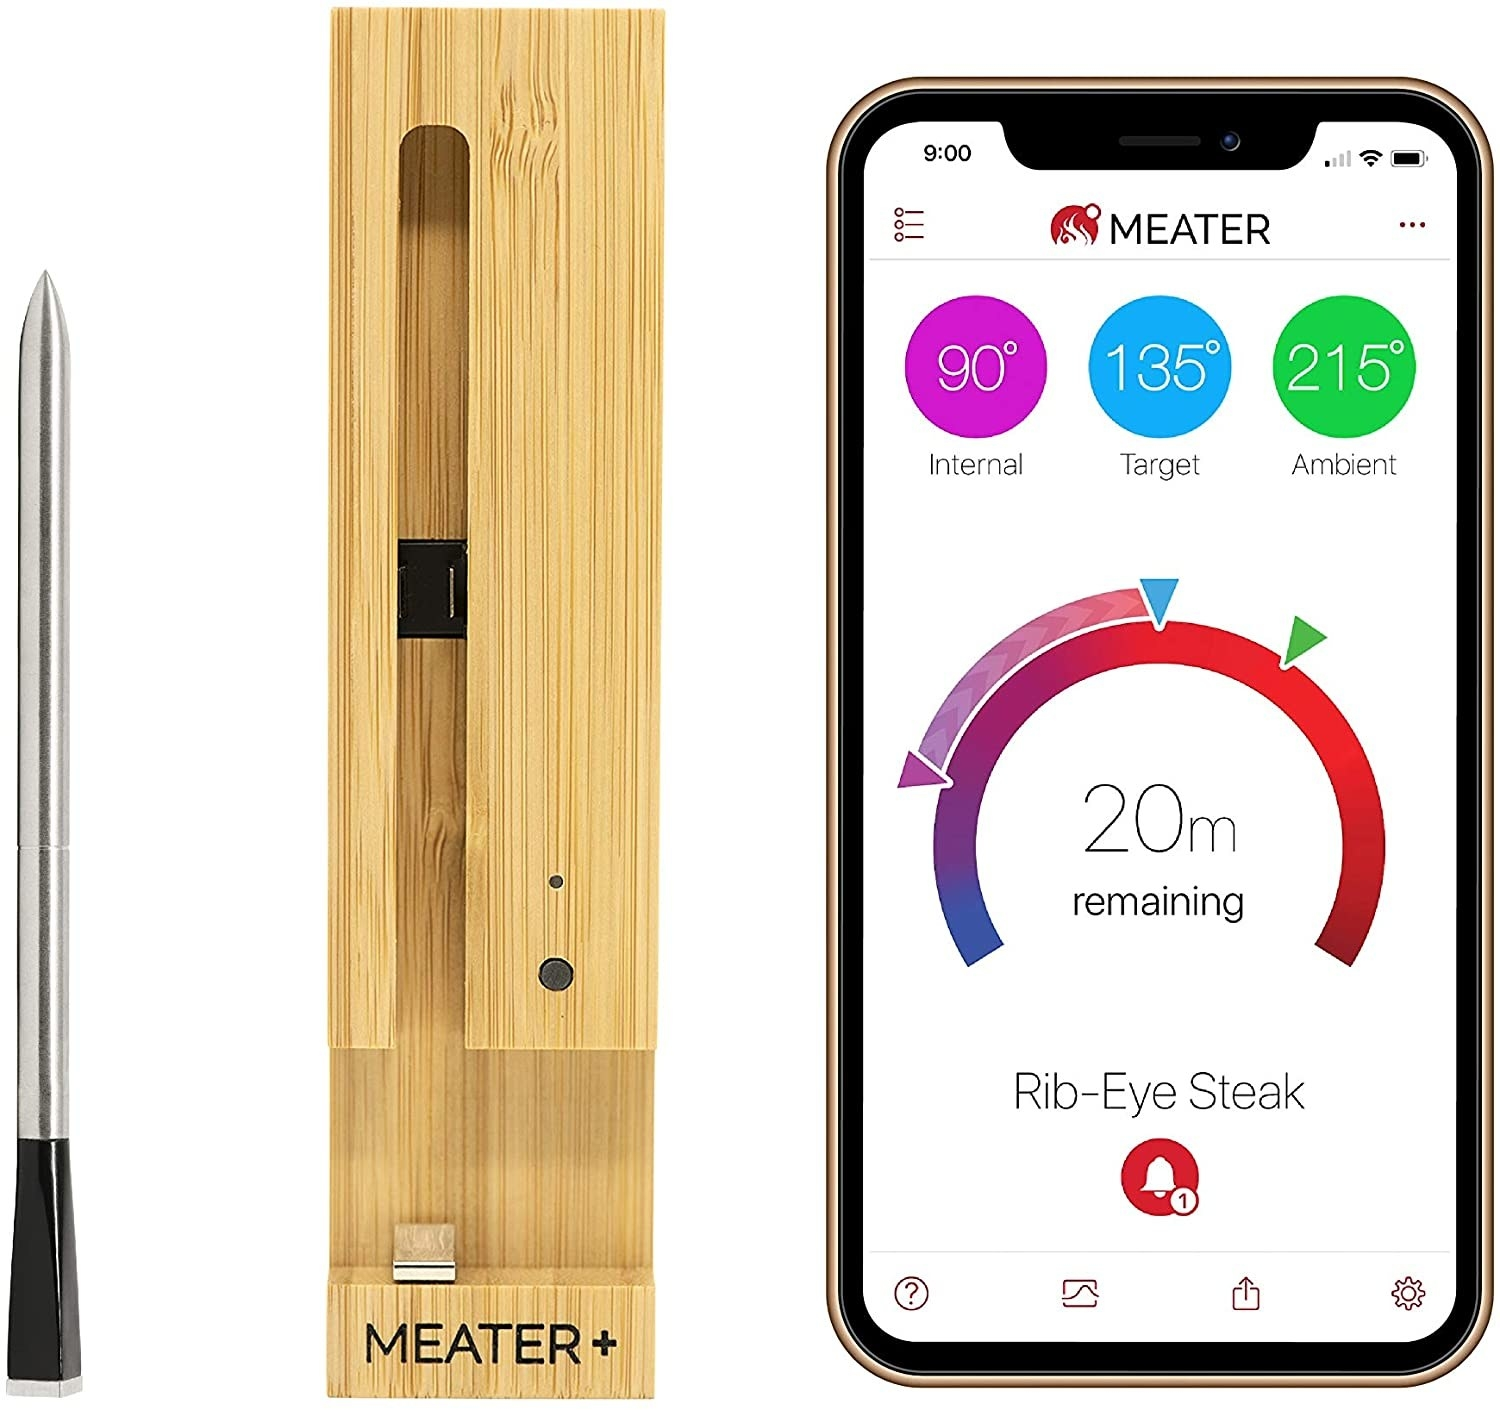 Meat thermometer, charging stand, and smartphone with accompanying app on screen